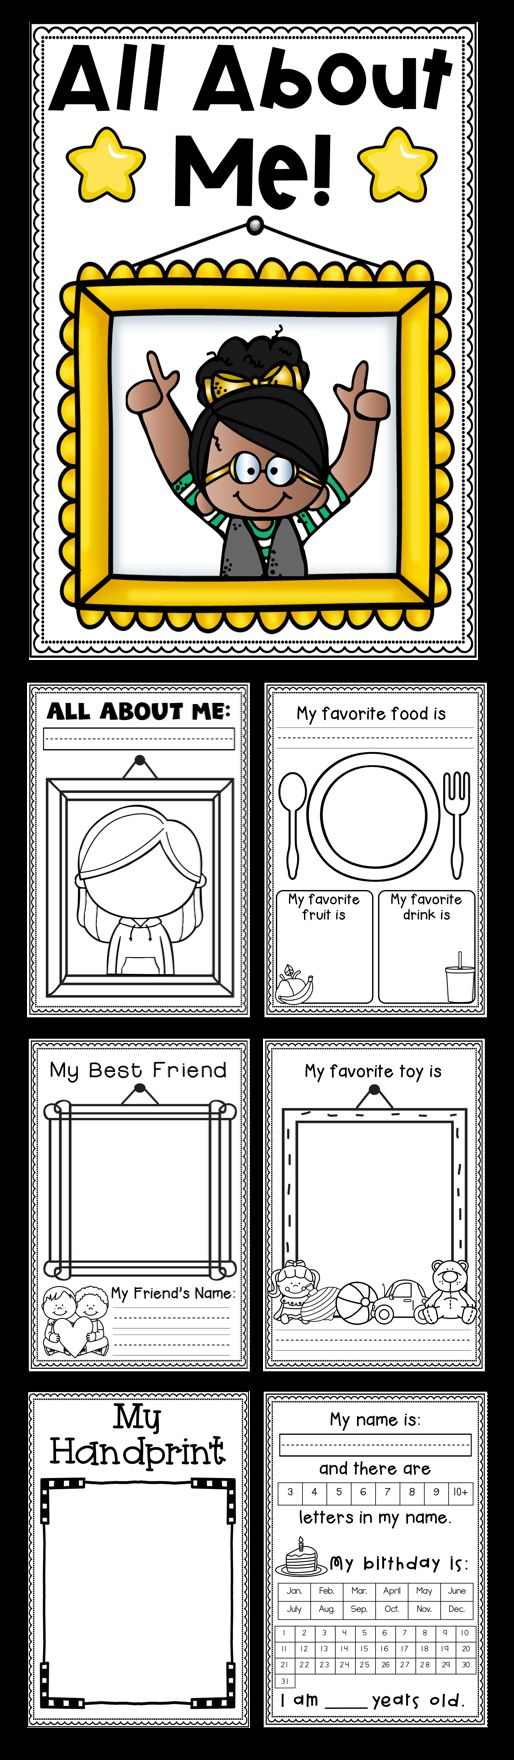 All About Me Mini Booklets by Tweet Resources. Perfect for your Social Studies lessons. So many options to choose from to create your mini booklet, such as favorite color, favorite book, handprint, best friends, special talents and more! Perfect for Kindergarten and First Grade.